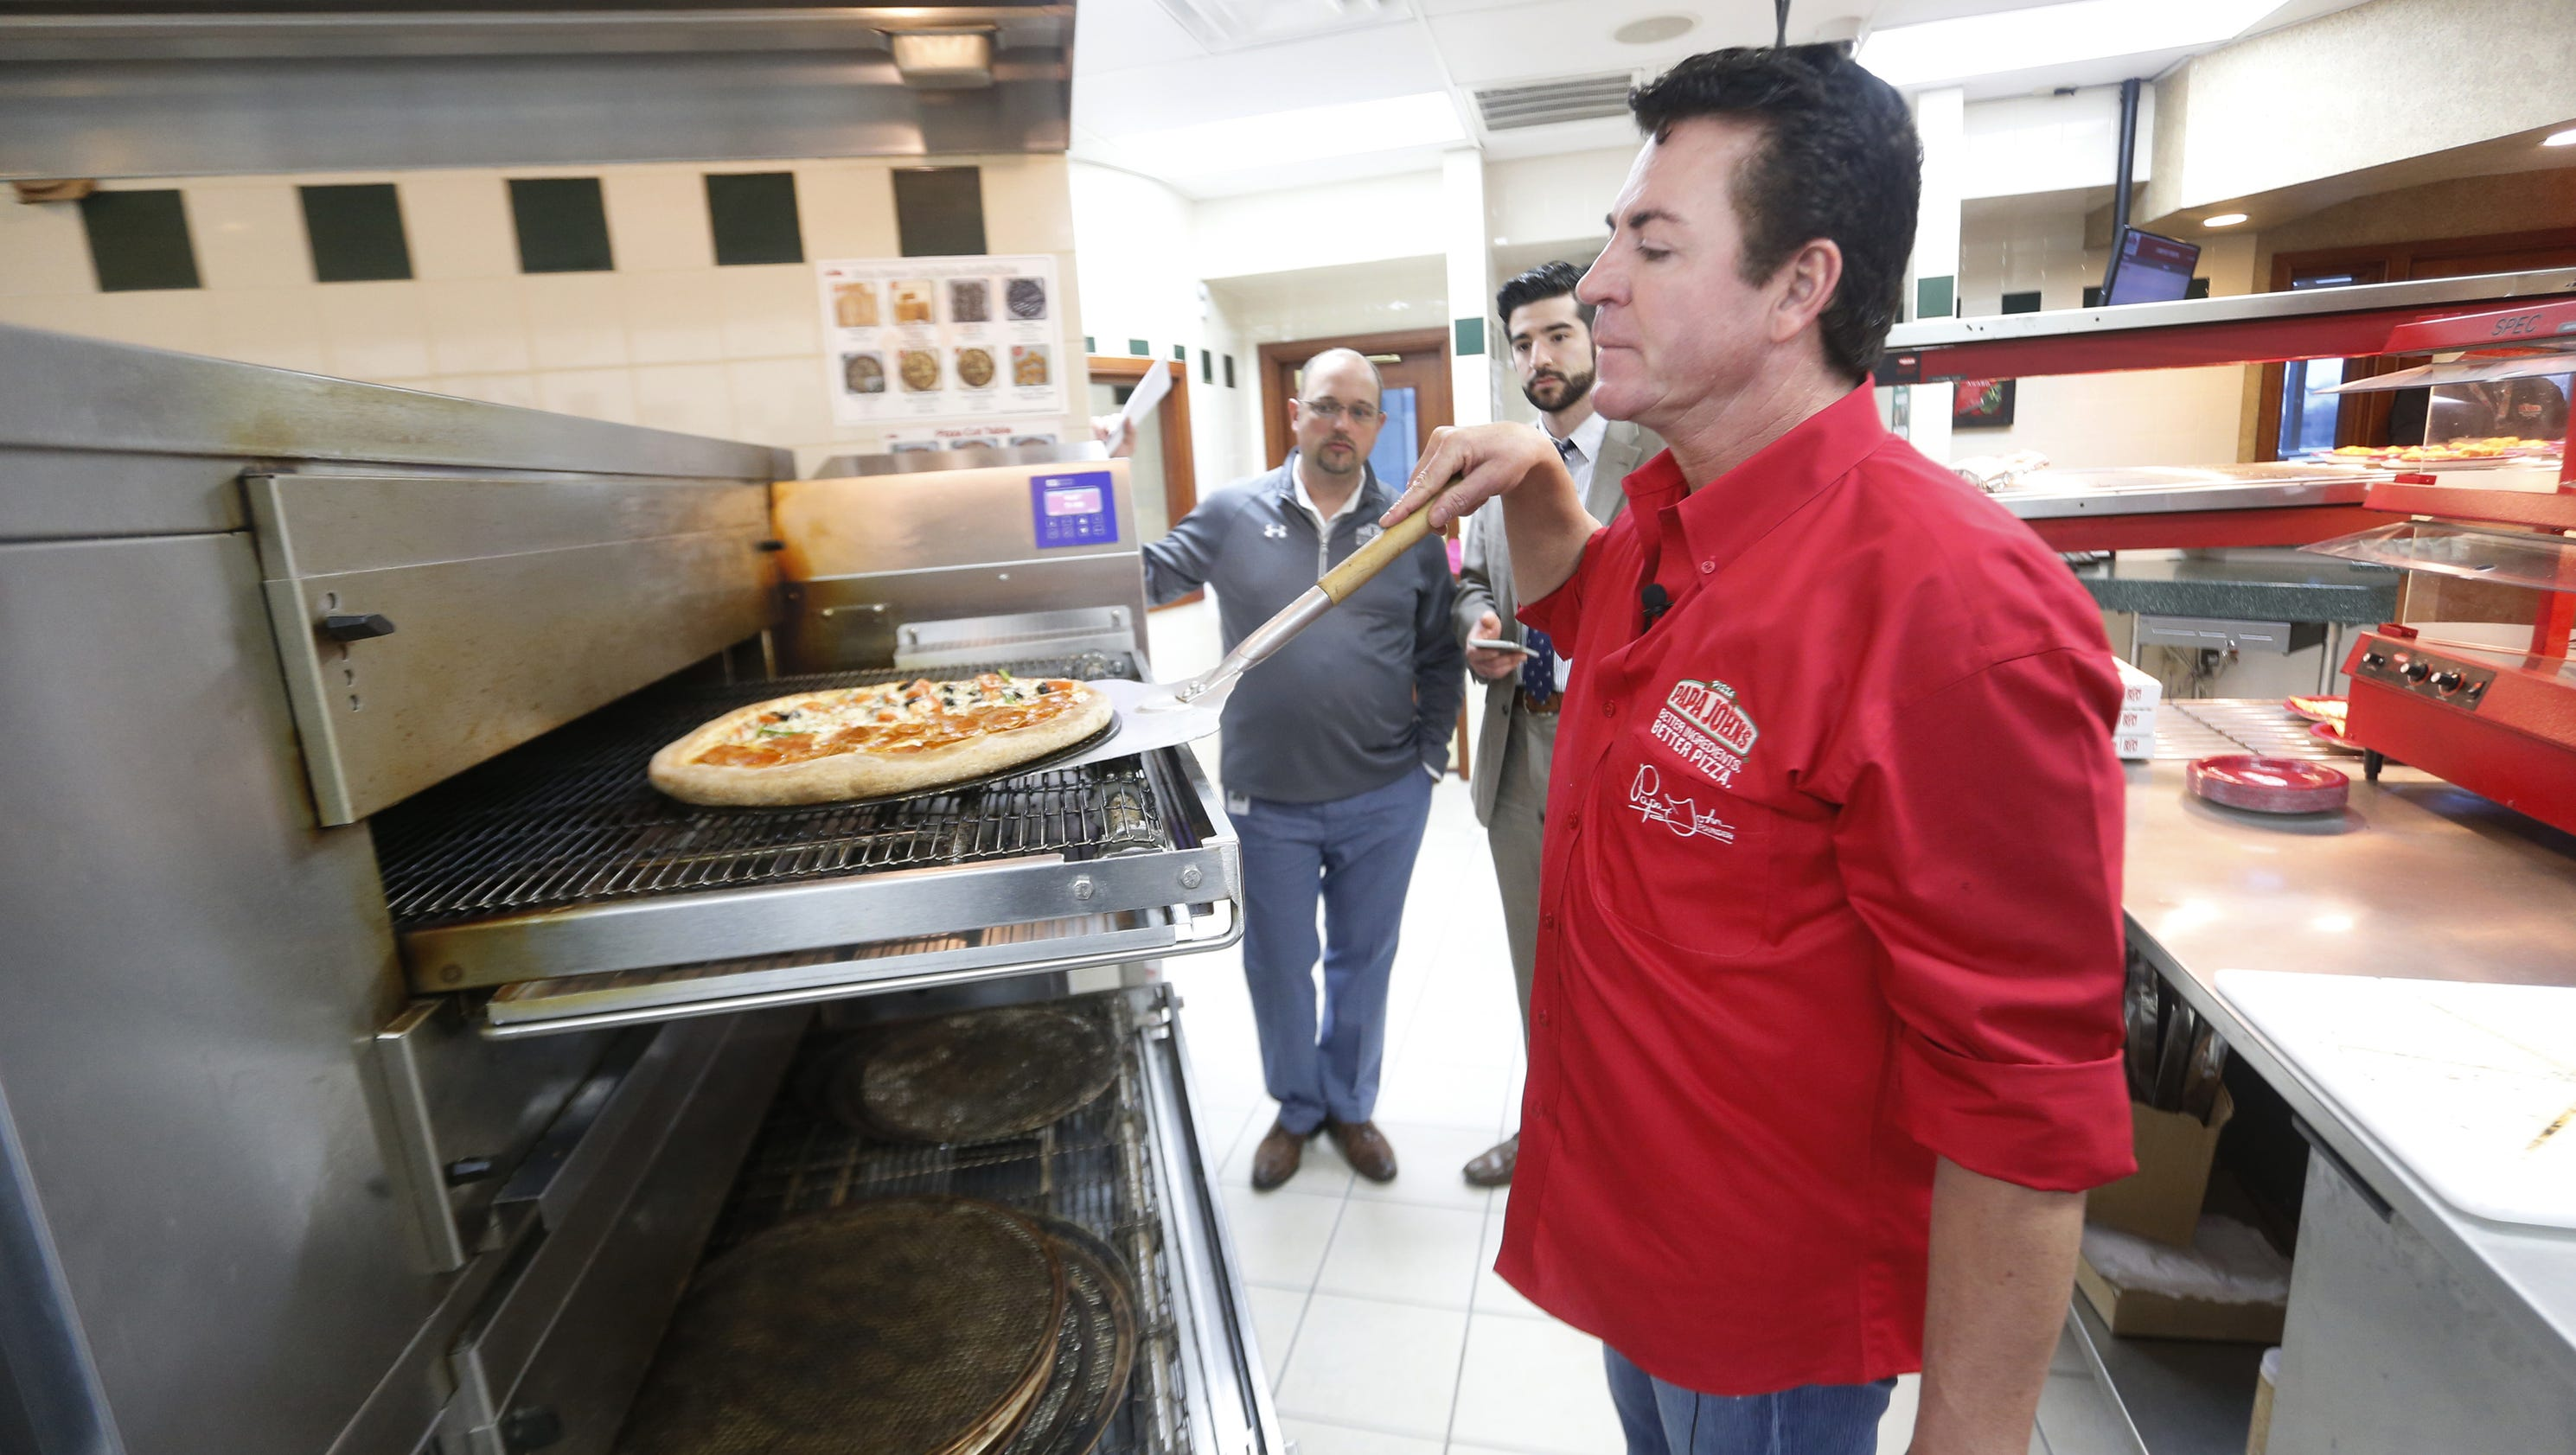 Feb 27, · Papa John's announced on Tuesday it is ending its NFL sponsorship deal. The pizza chain faced backlash after Papa John's founder blamed the NFL's